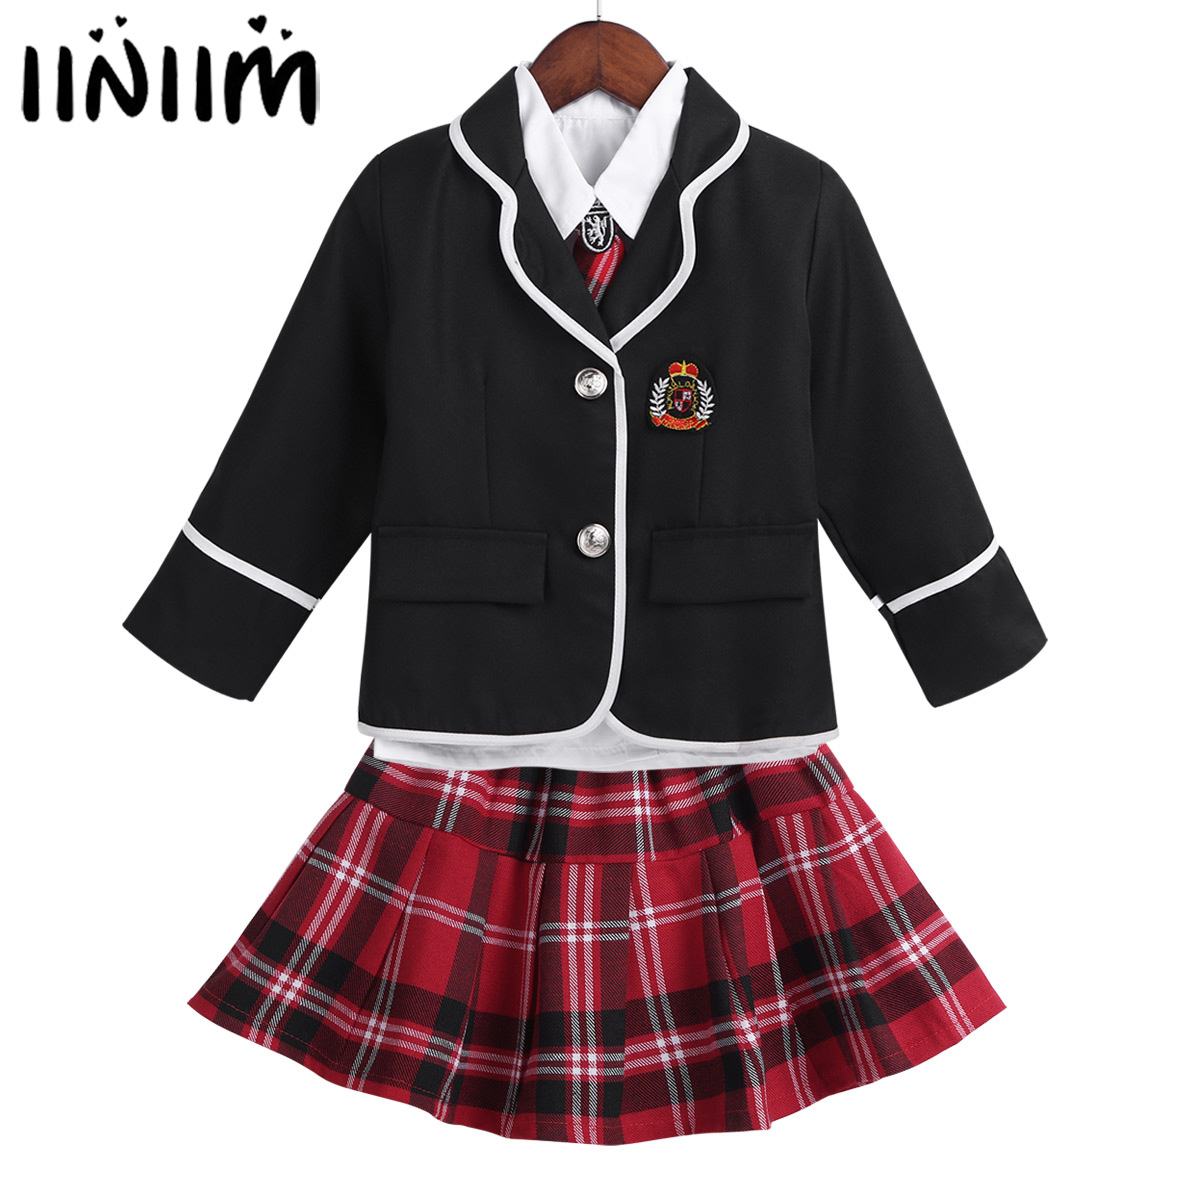 Kids Girls British Style School Uniform Anime Costume Suit Long Sleeve Coat With Shirt Tie Mini Skirt Set